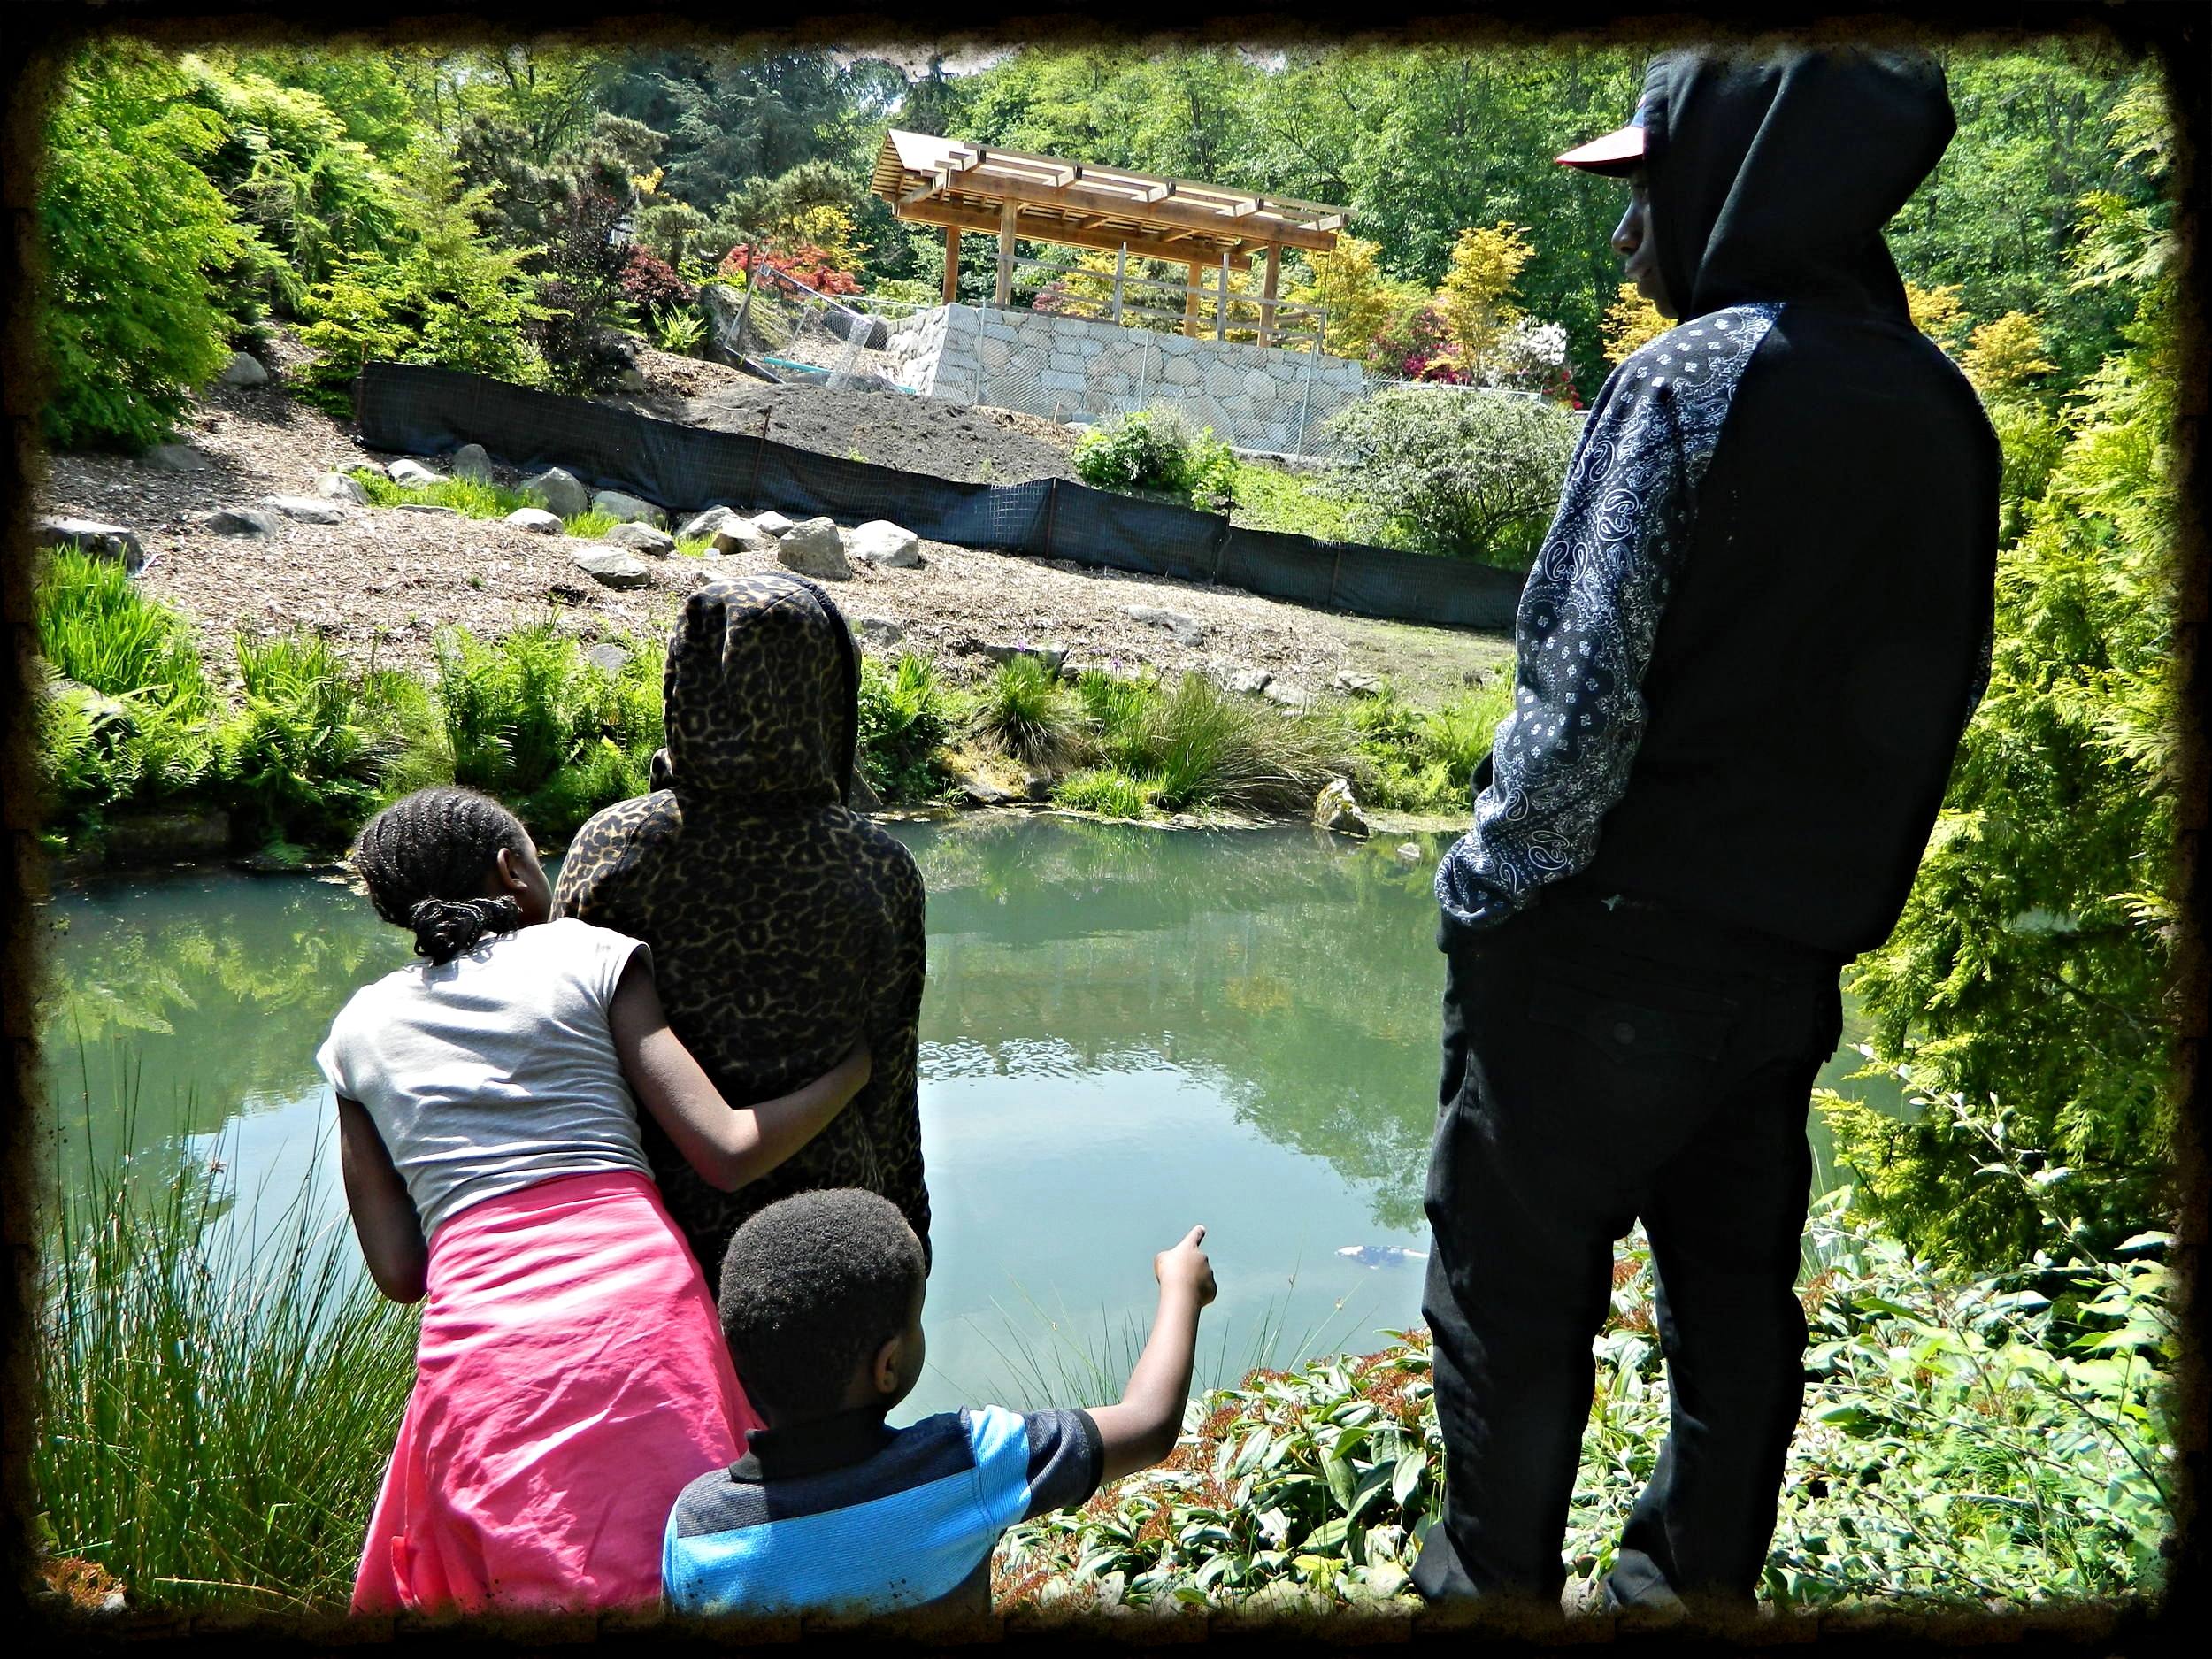 Occasionally the children and youth come together for activities such as going to Kubota Gardens near the church.